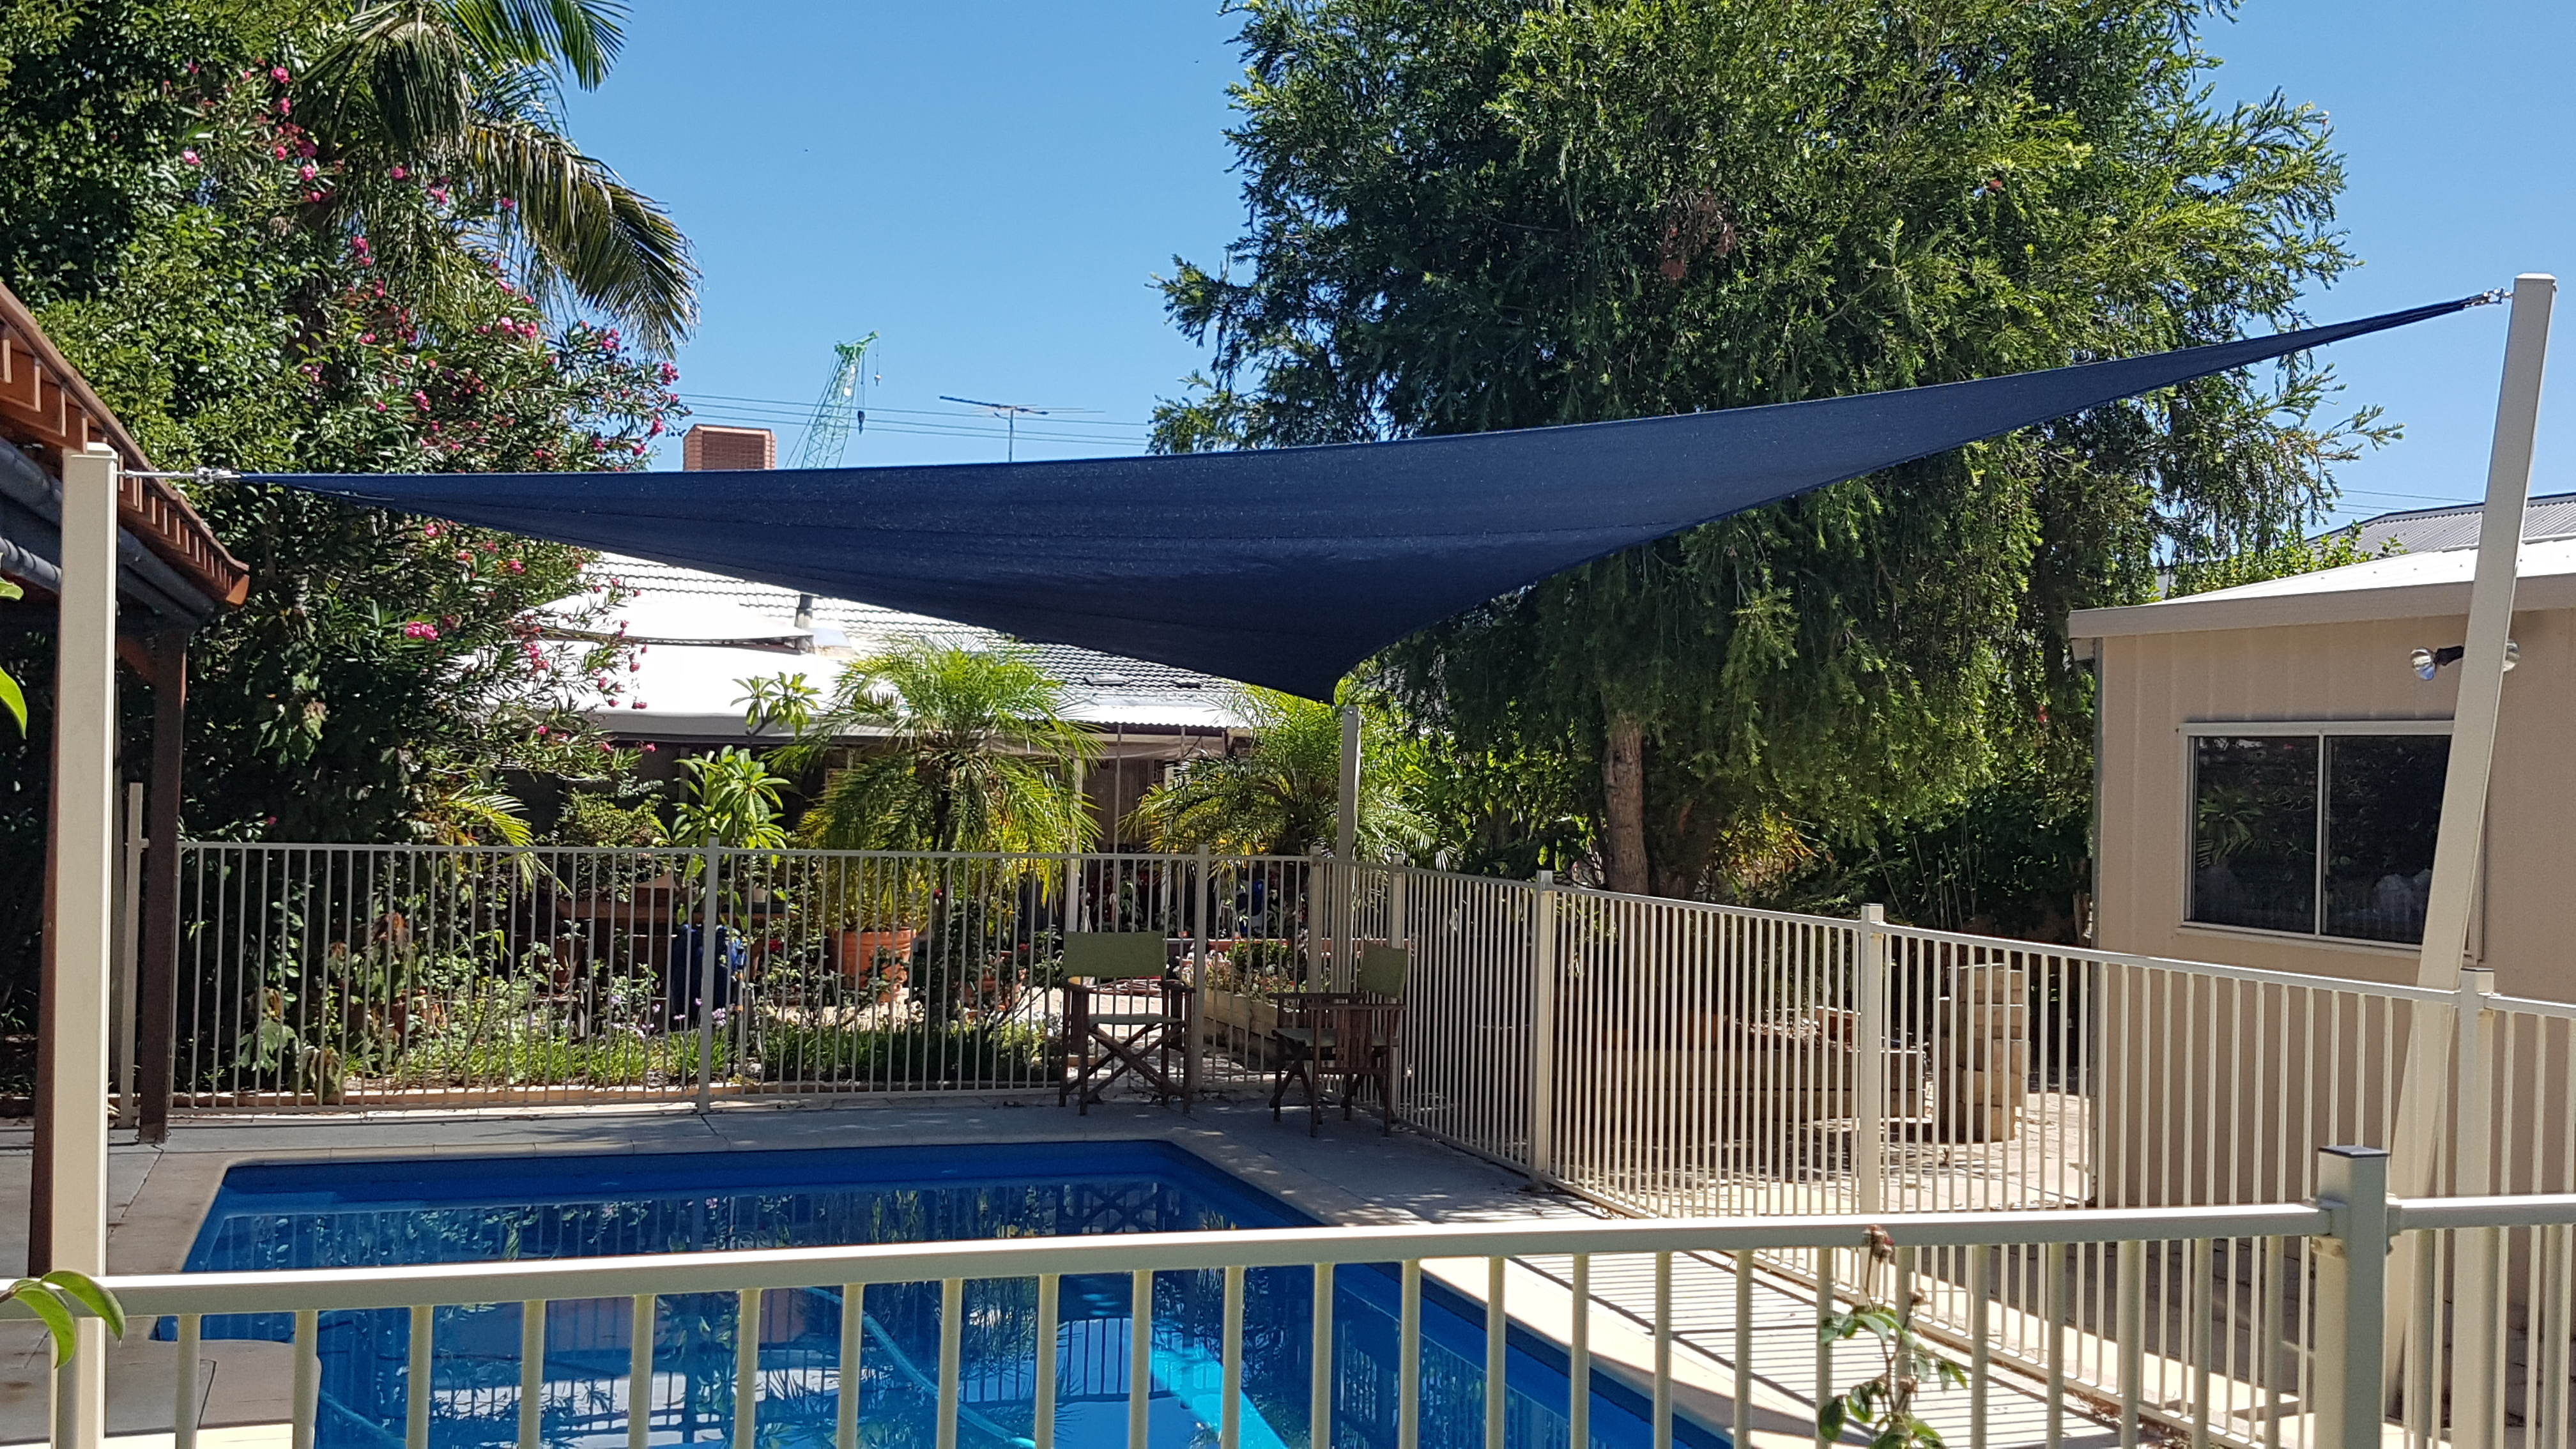 Sail_City_shade_sails_Extreme_32_Navy_blue_over_pool.jpg